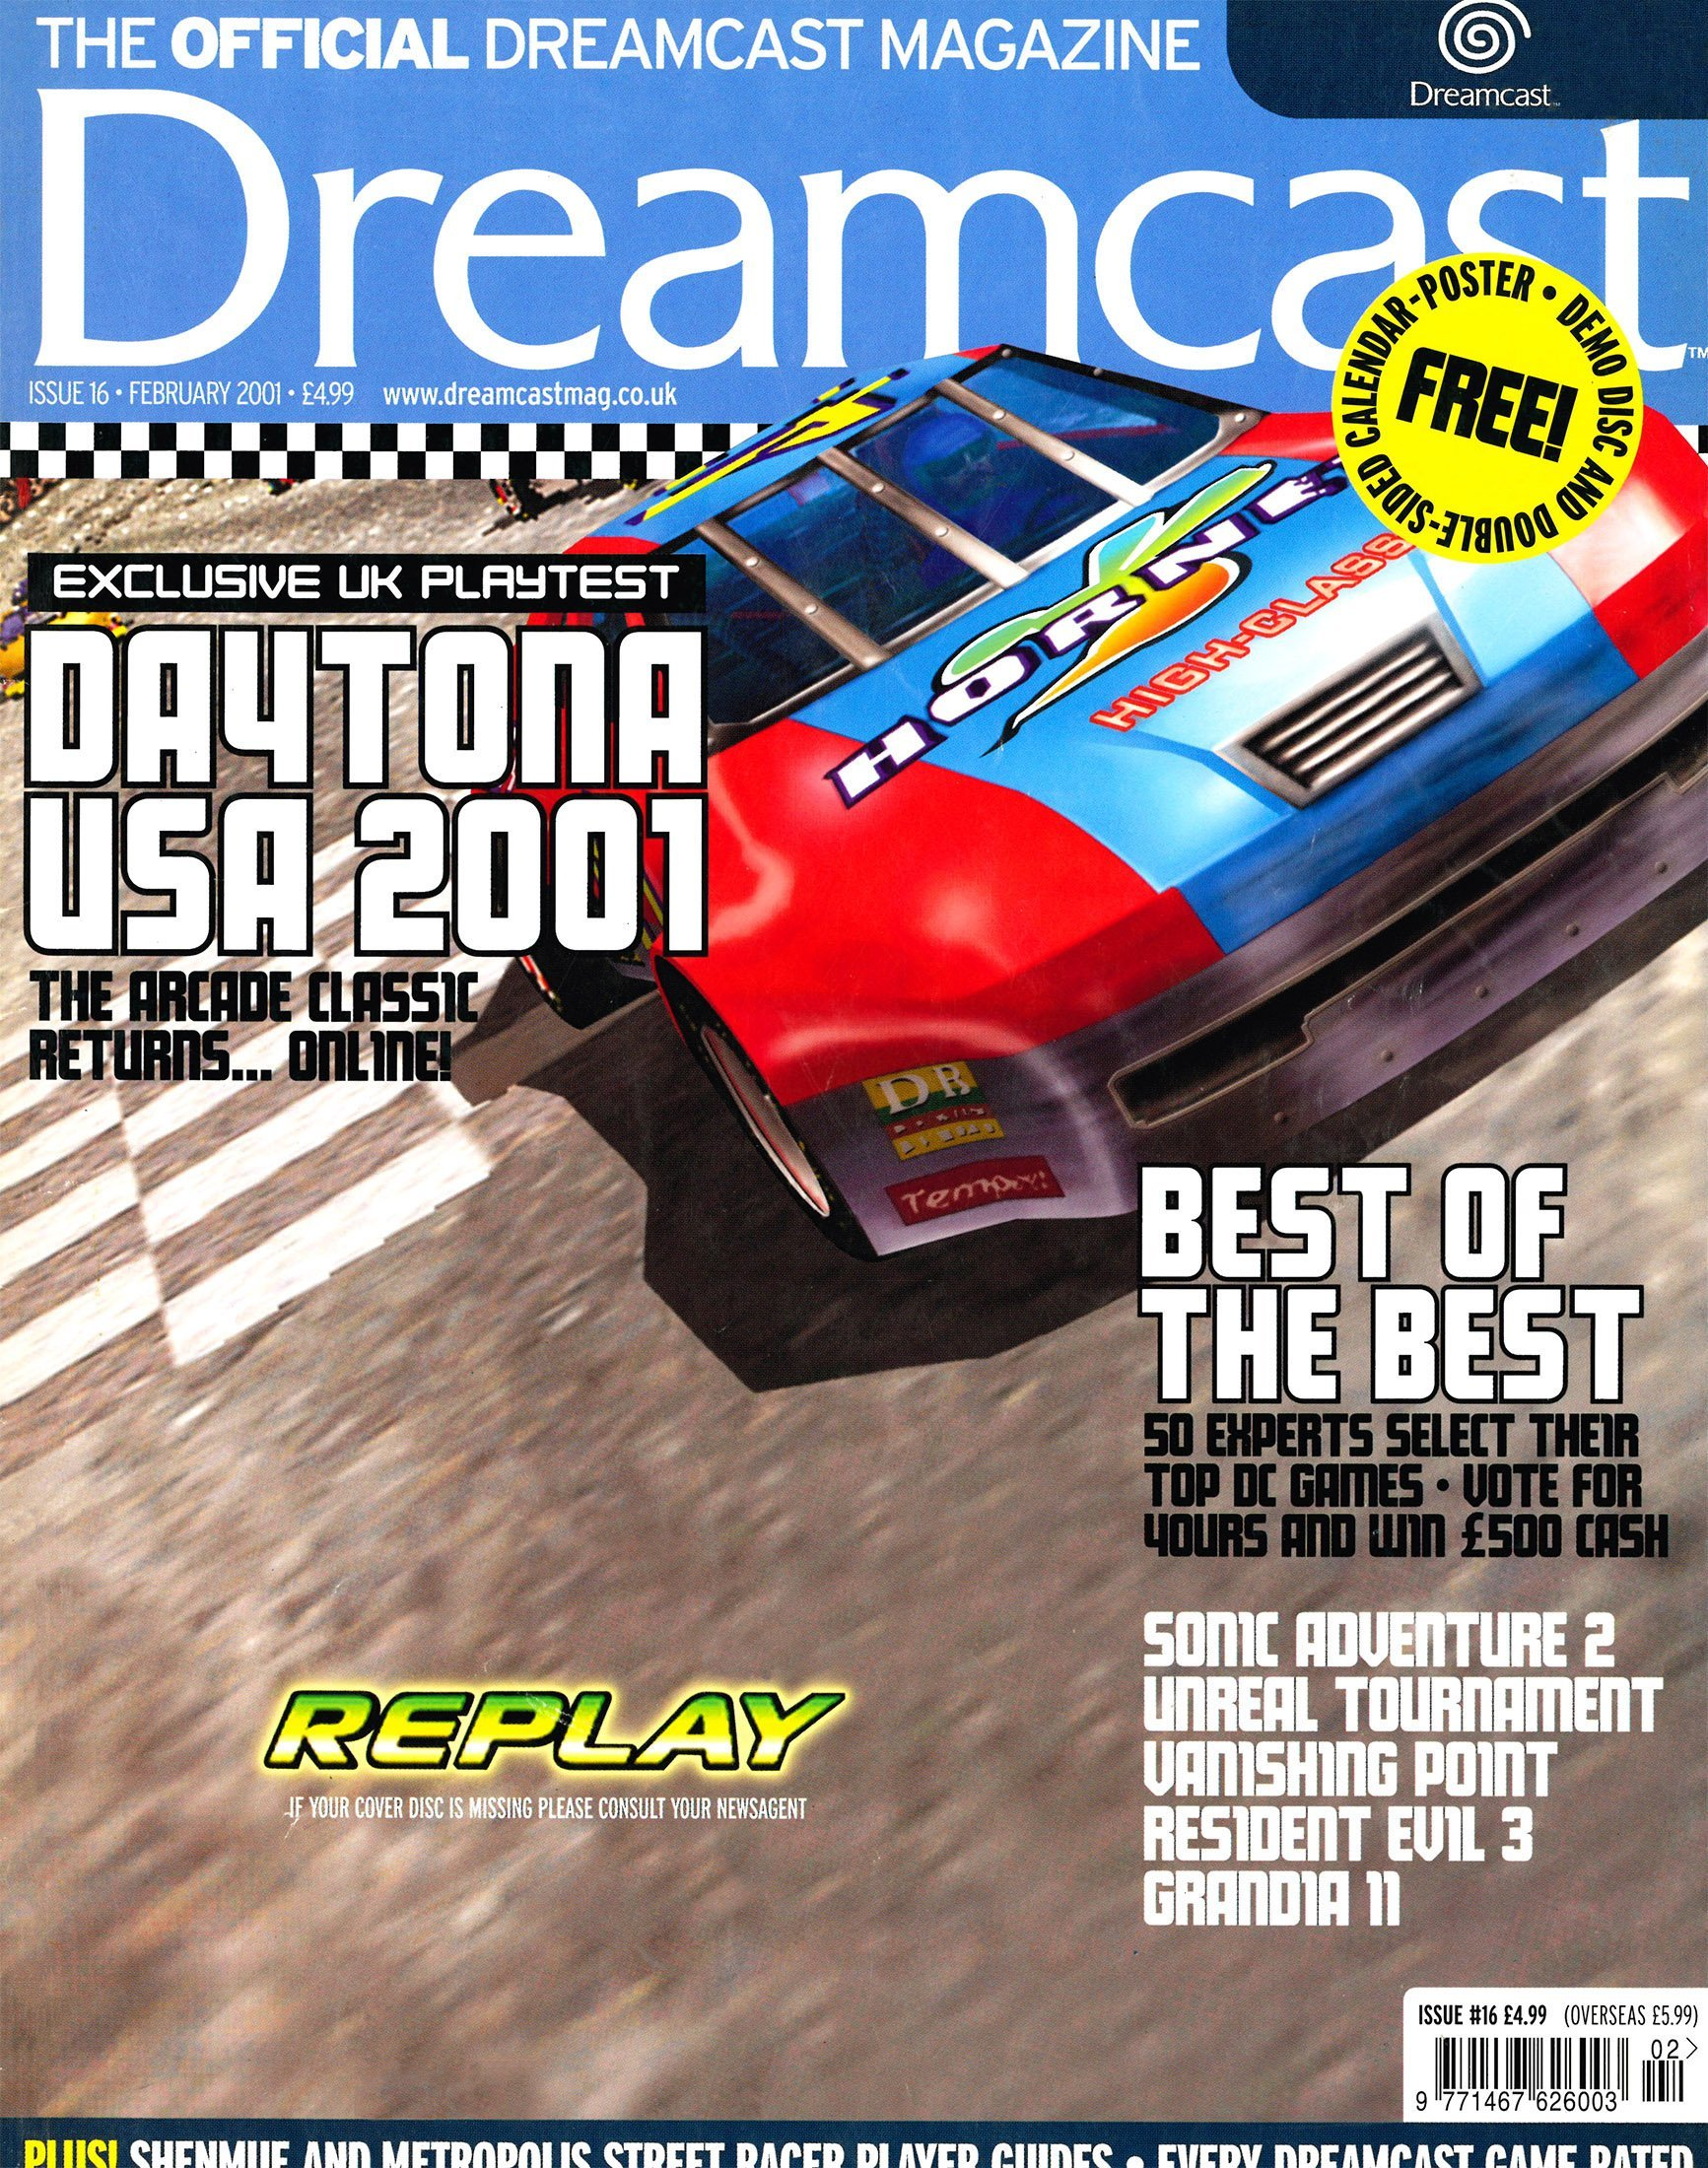 Official Dreamcast Magazine 16 (February 2001)